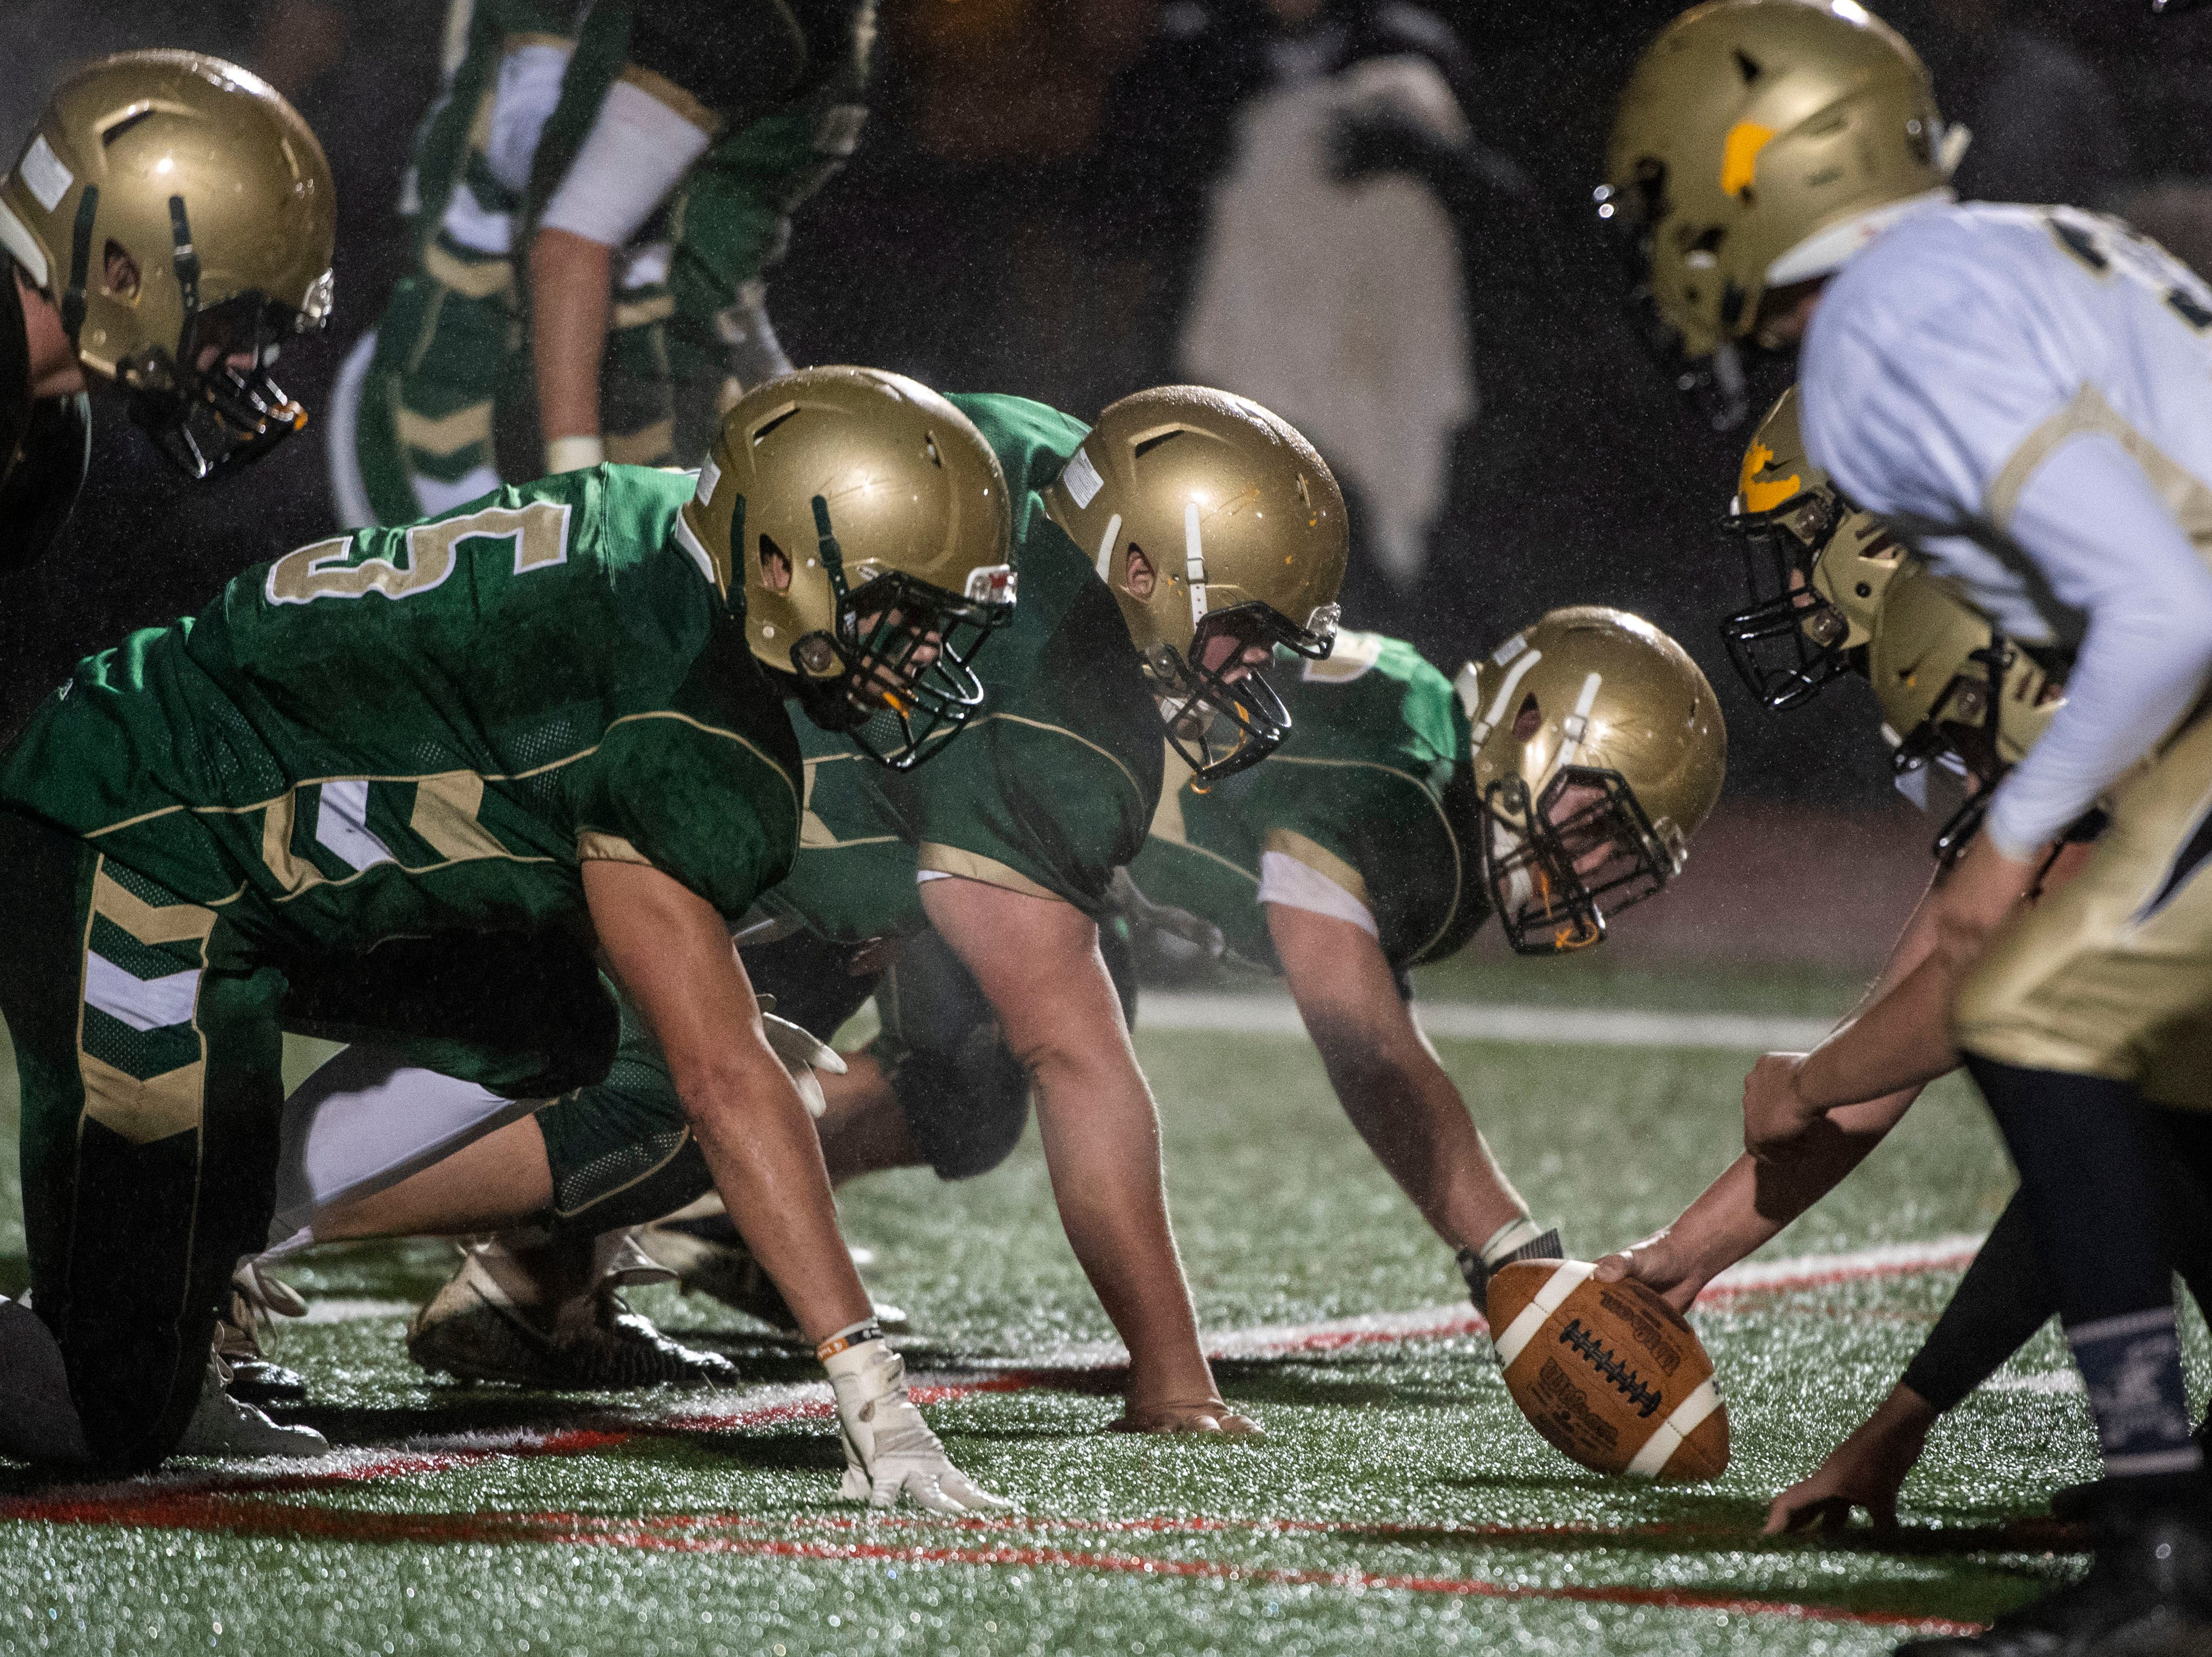 The York Catholic defensive line gets set on the ball during the District III 2A championship game at South Western High School on Nov. 9, 2018. The York Catholic Fighting Irish beat the Delone Catholic Squires in overtime, 28-21.